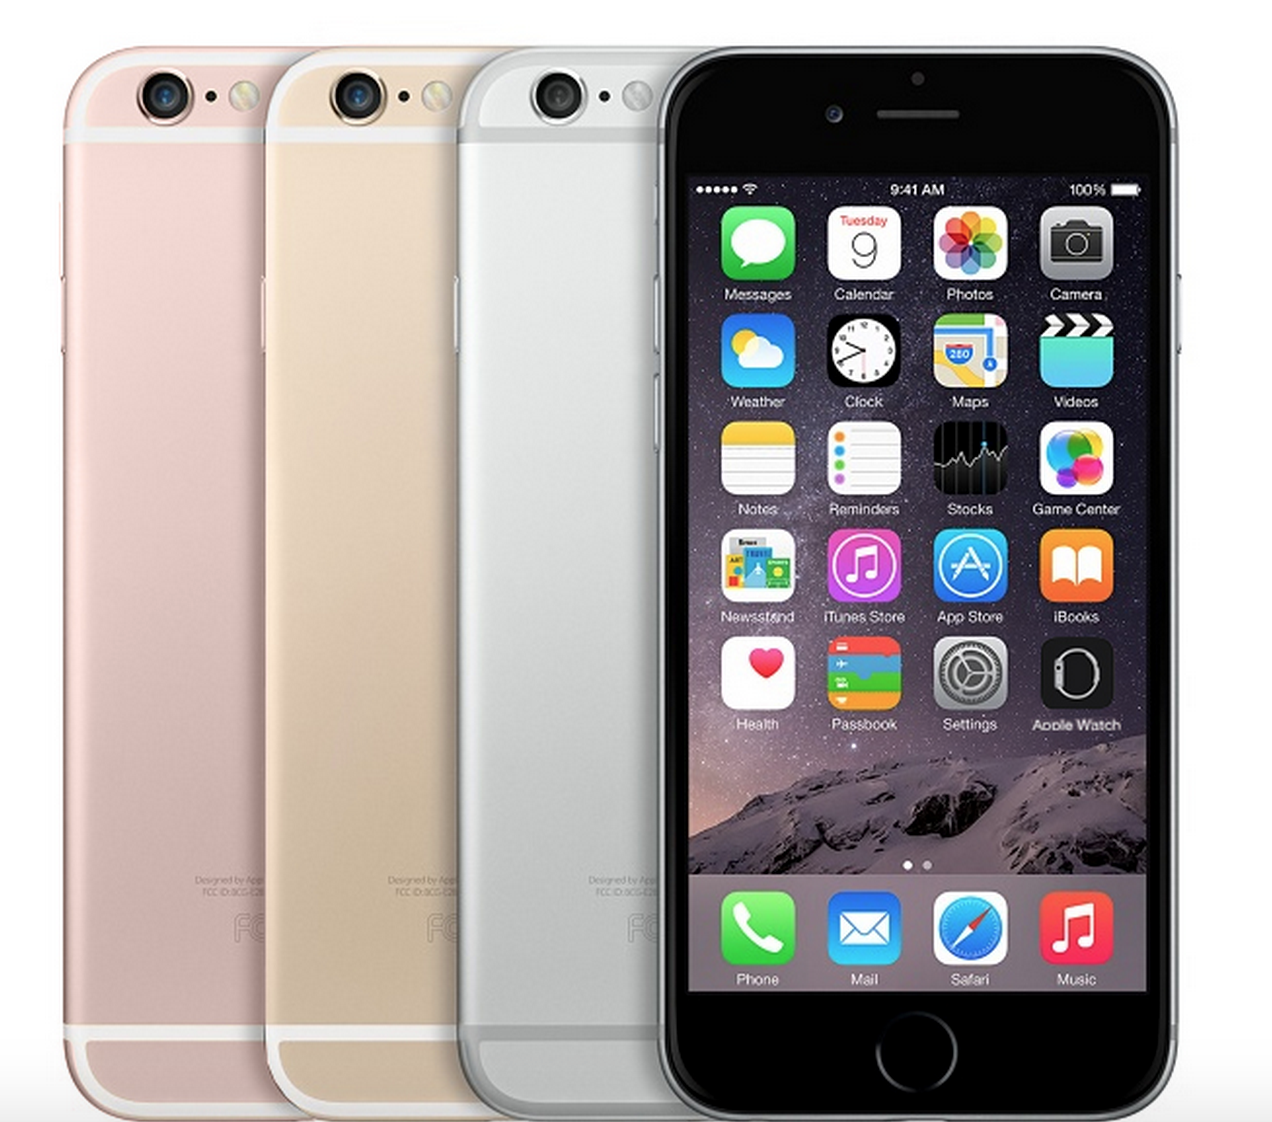 Apple iPhone 6s Specifications Price Images Pics